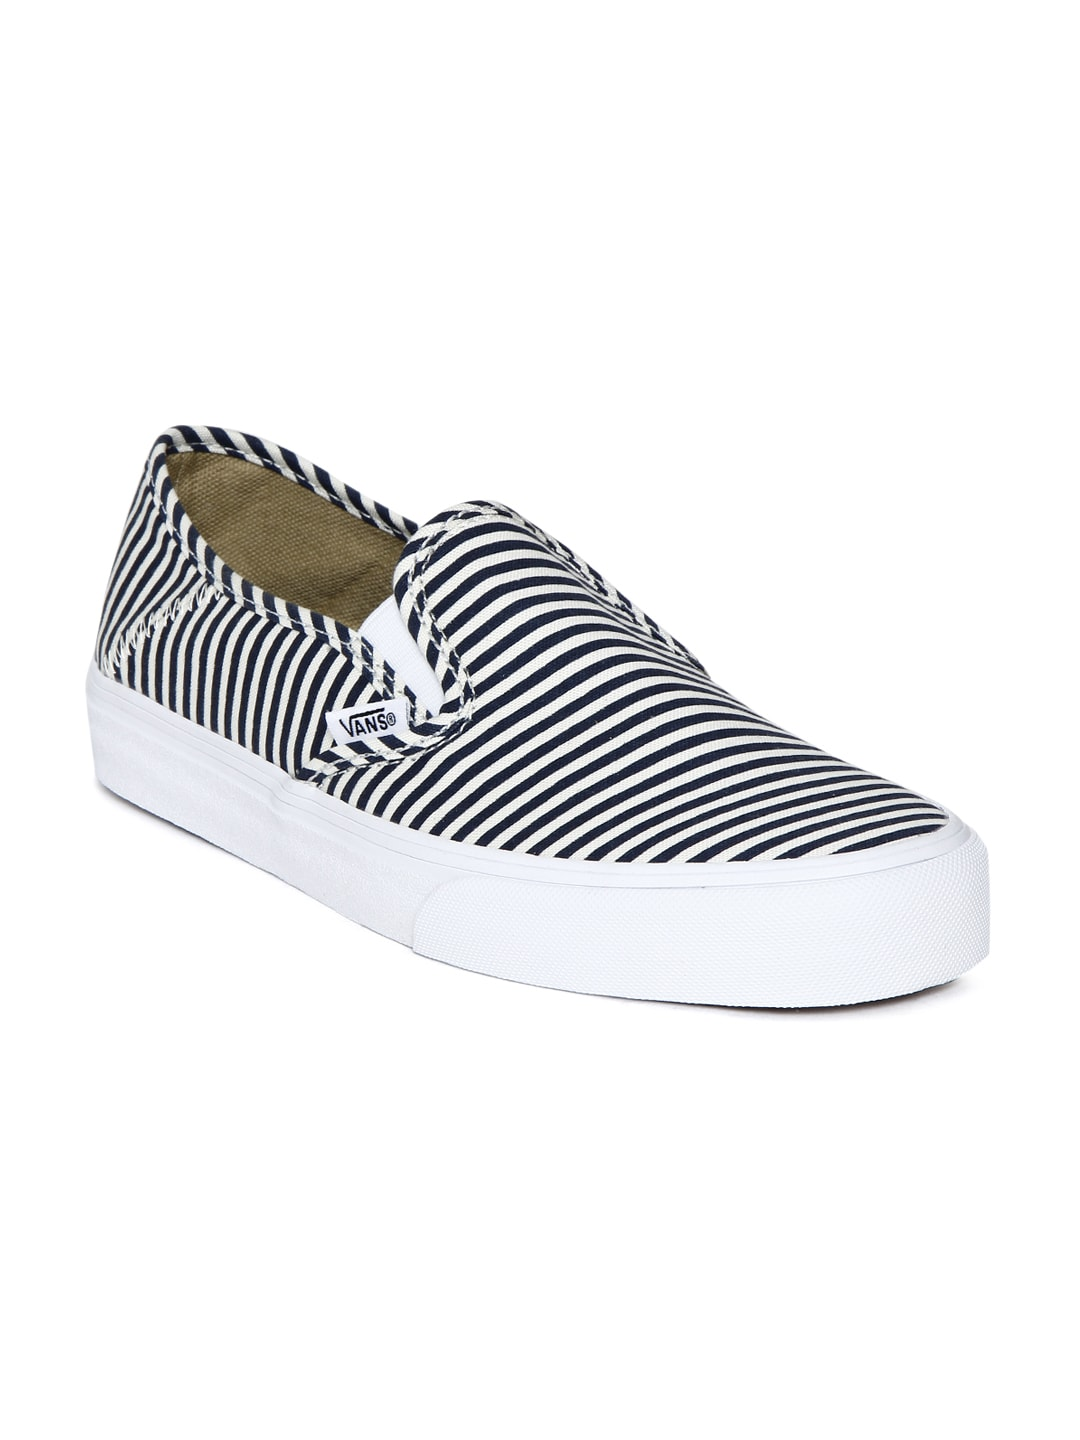 10db94a5cda52e Vans Canvas Shoes - Buy Vans Canvas Shoes Online in India